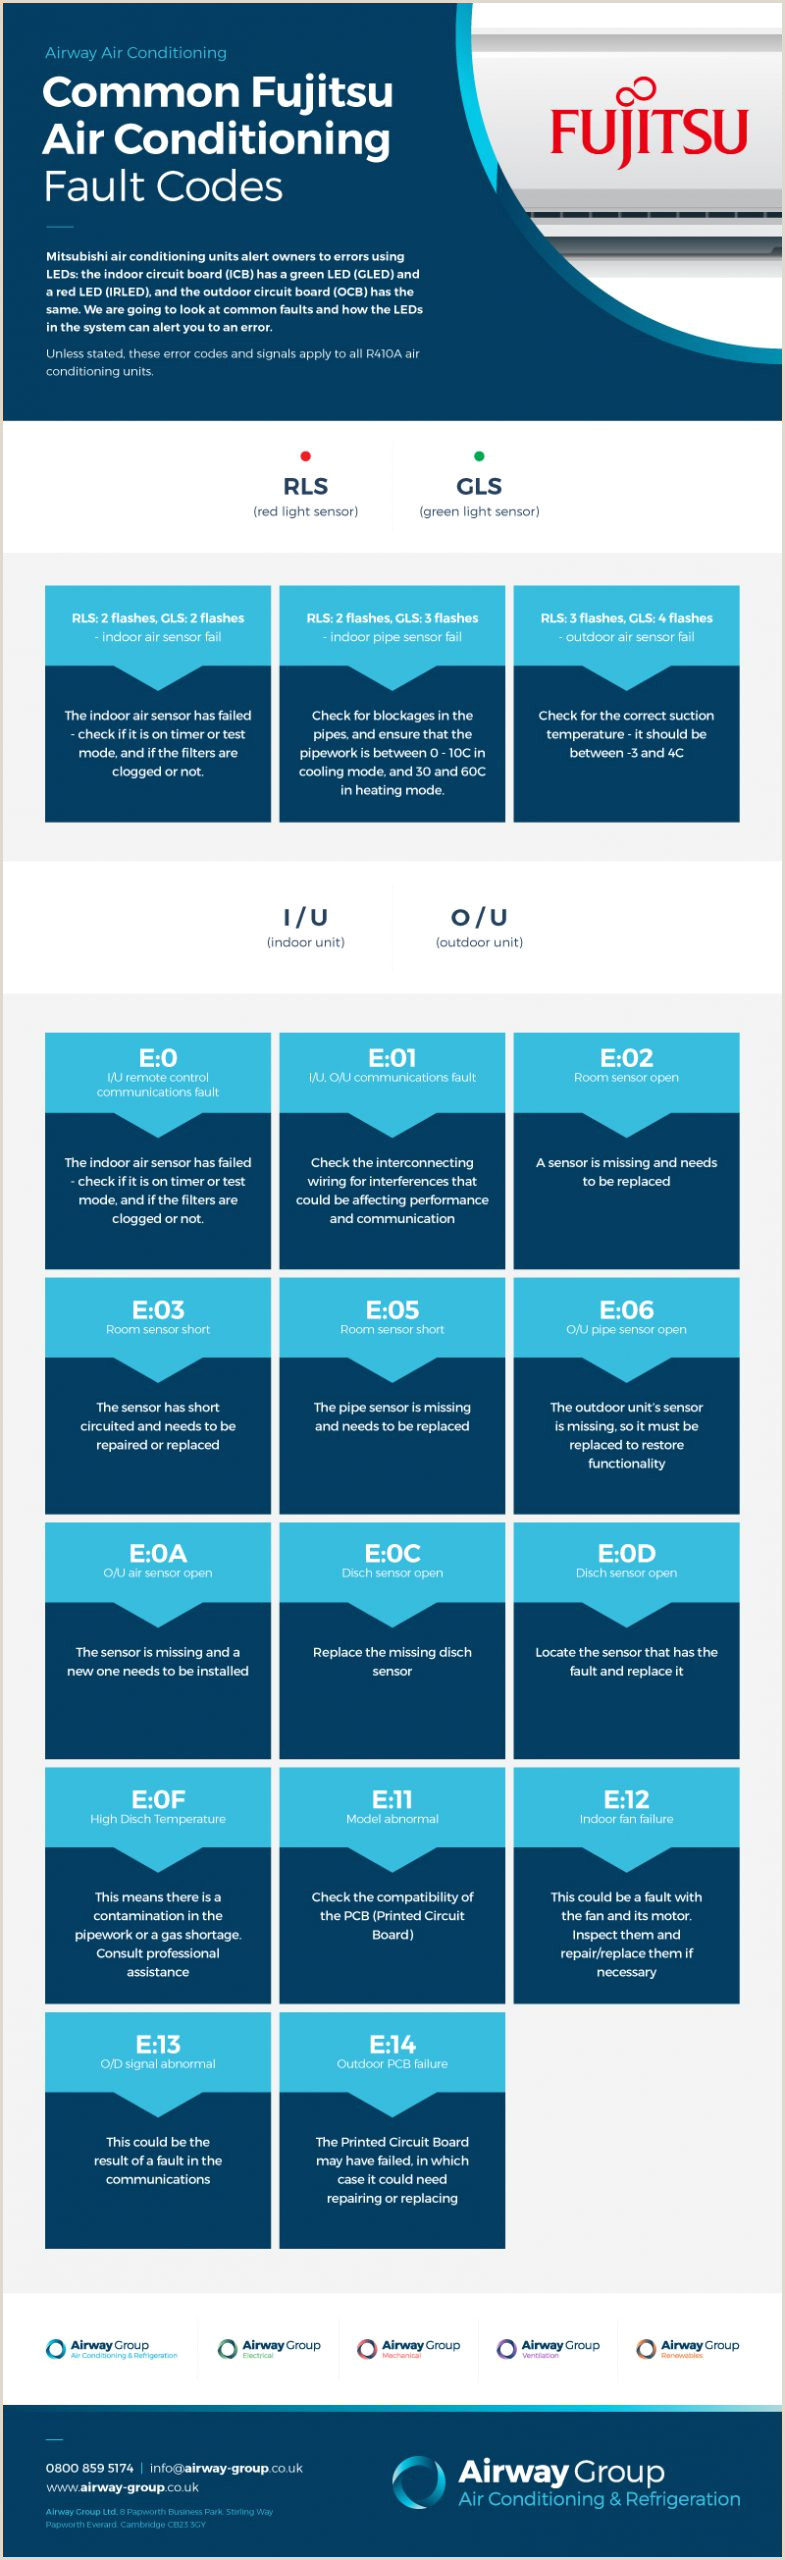 30 Best Business Cards Thank You Messages Fujitsu Air Conditioning Fault Codes Explained [infographic